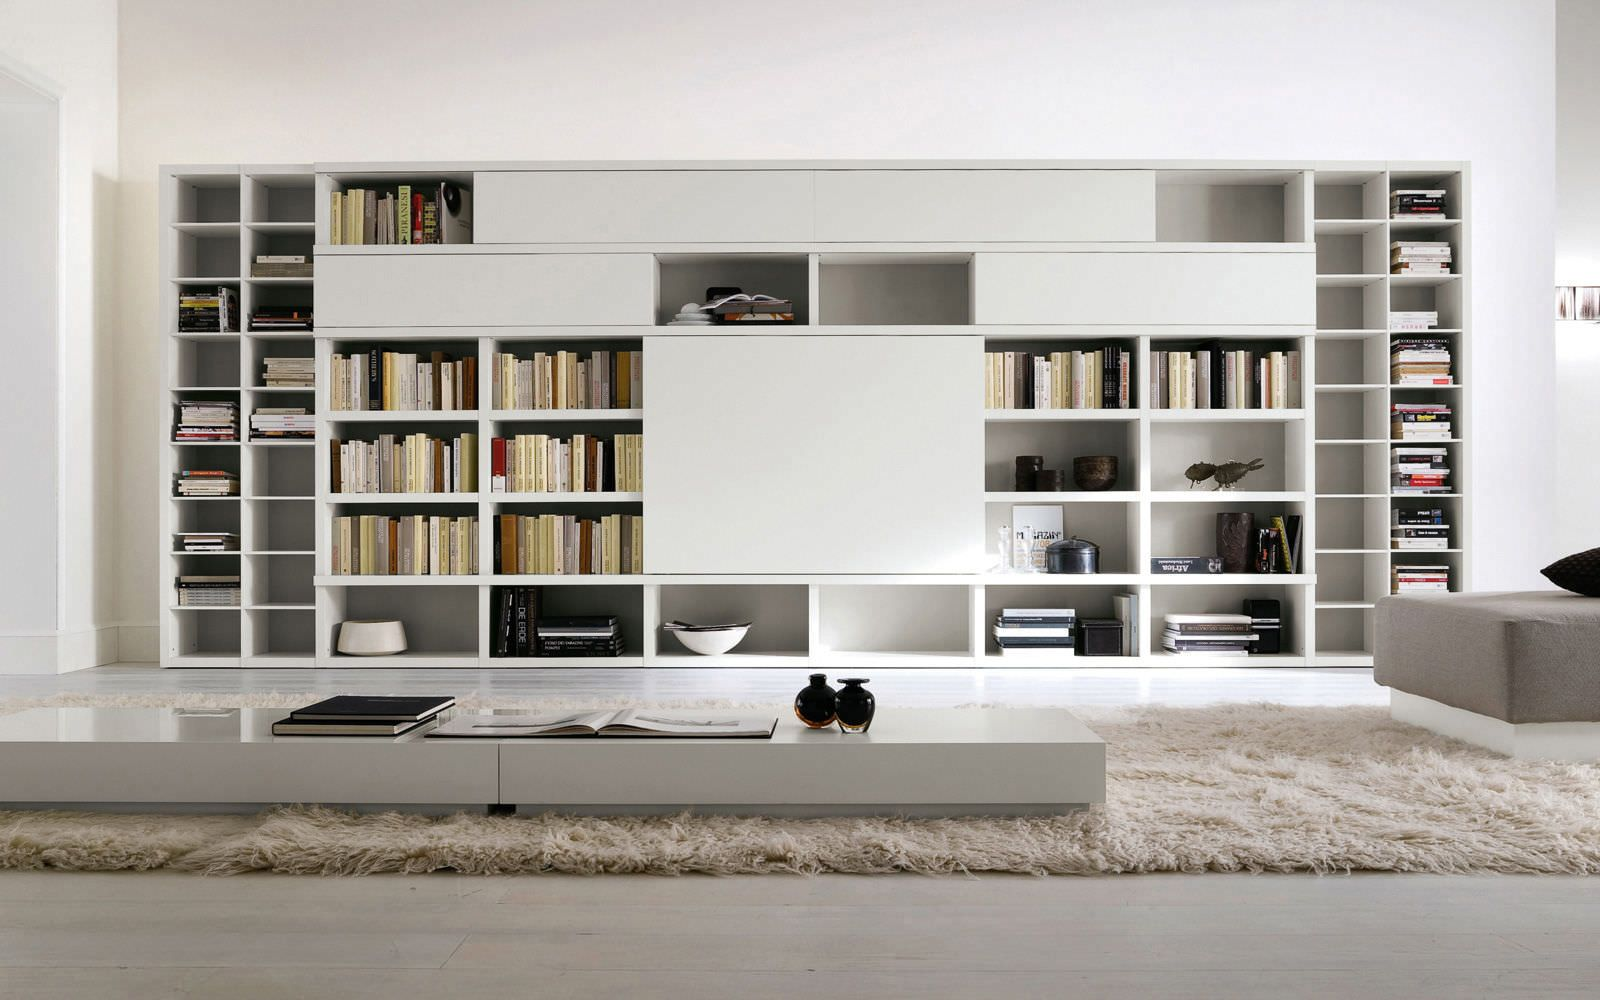 Astonishing Furniture Wonderful White Lacquered Contemporary Bookcase Design Cool Home Interior Book Storage Bookcases Perfect For Smart